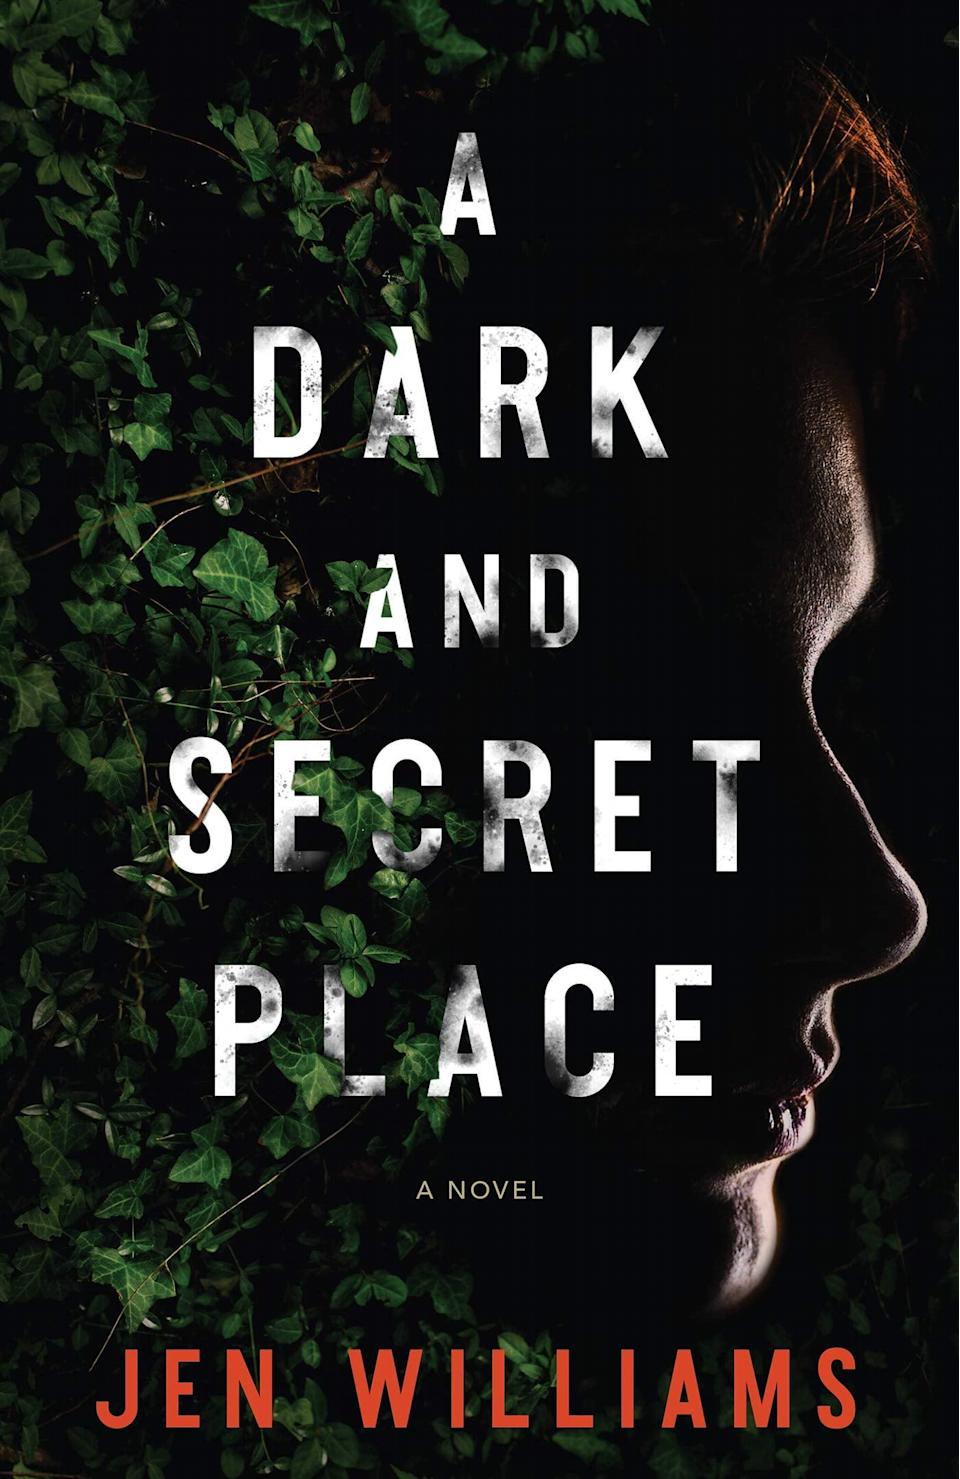 <p><span><strong>A Dark and Secret Place</strong></span> by Jen Williams is a twisty thriller about mothers and daughters, and the secrets they keep. In the wake of her mother's suicide, Heather Evans returns home to discover her mom had been corresponding with a notorious serial killer for years. What's even more concerning is that even though the killer is still behind bars, someone seems to be copying his ritualistic murders. </p> <p><em>Out June 8</em></p>